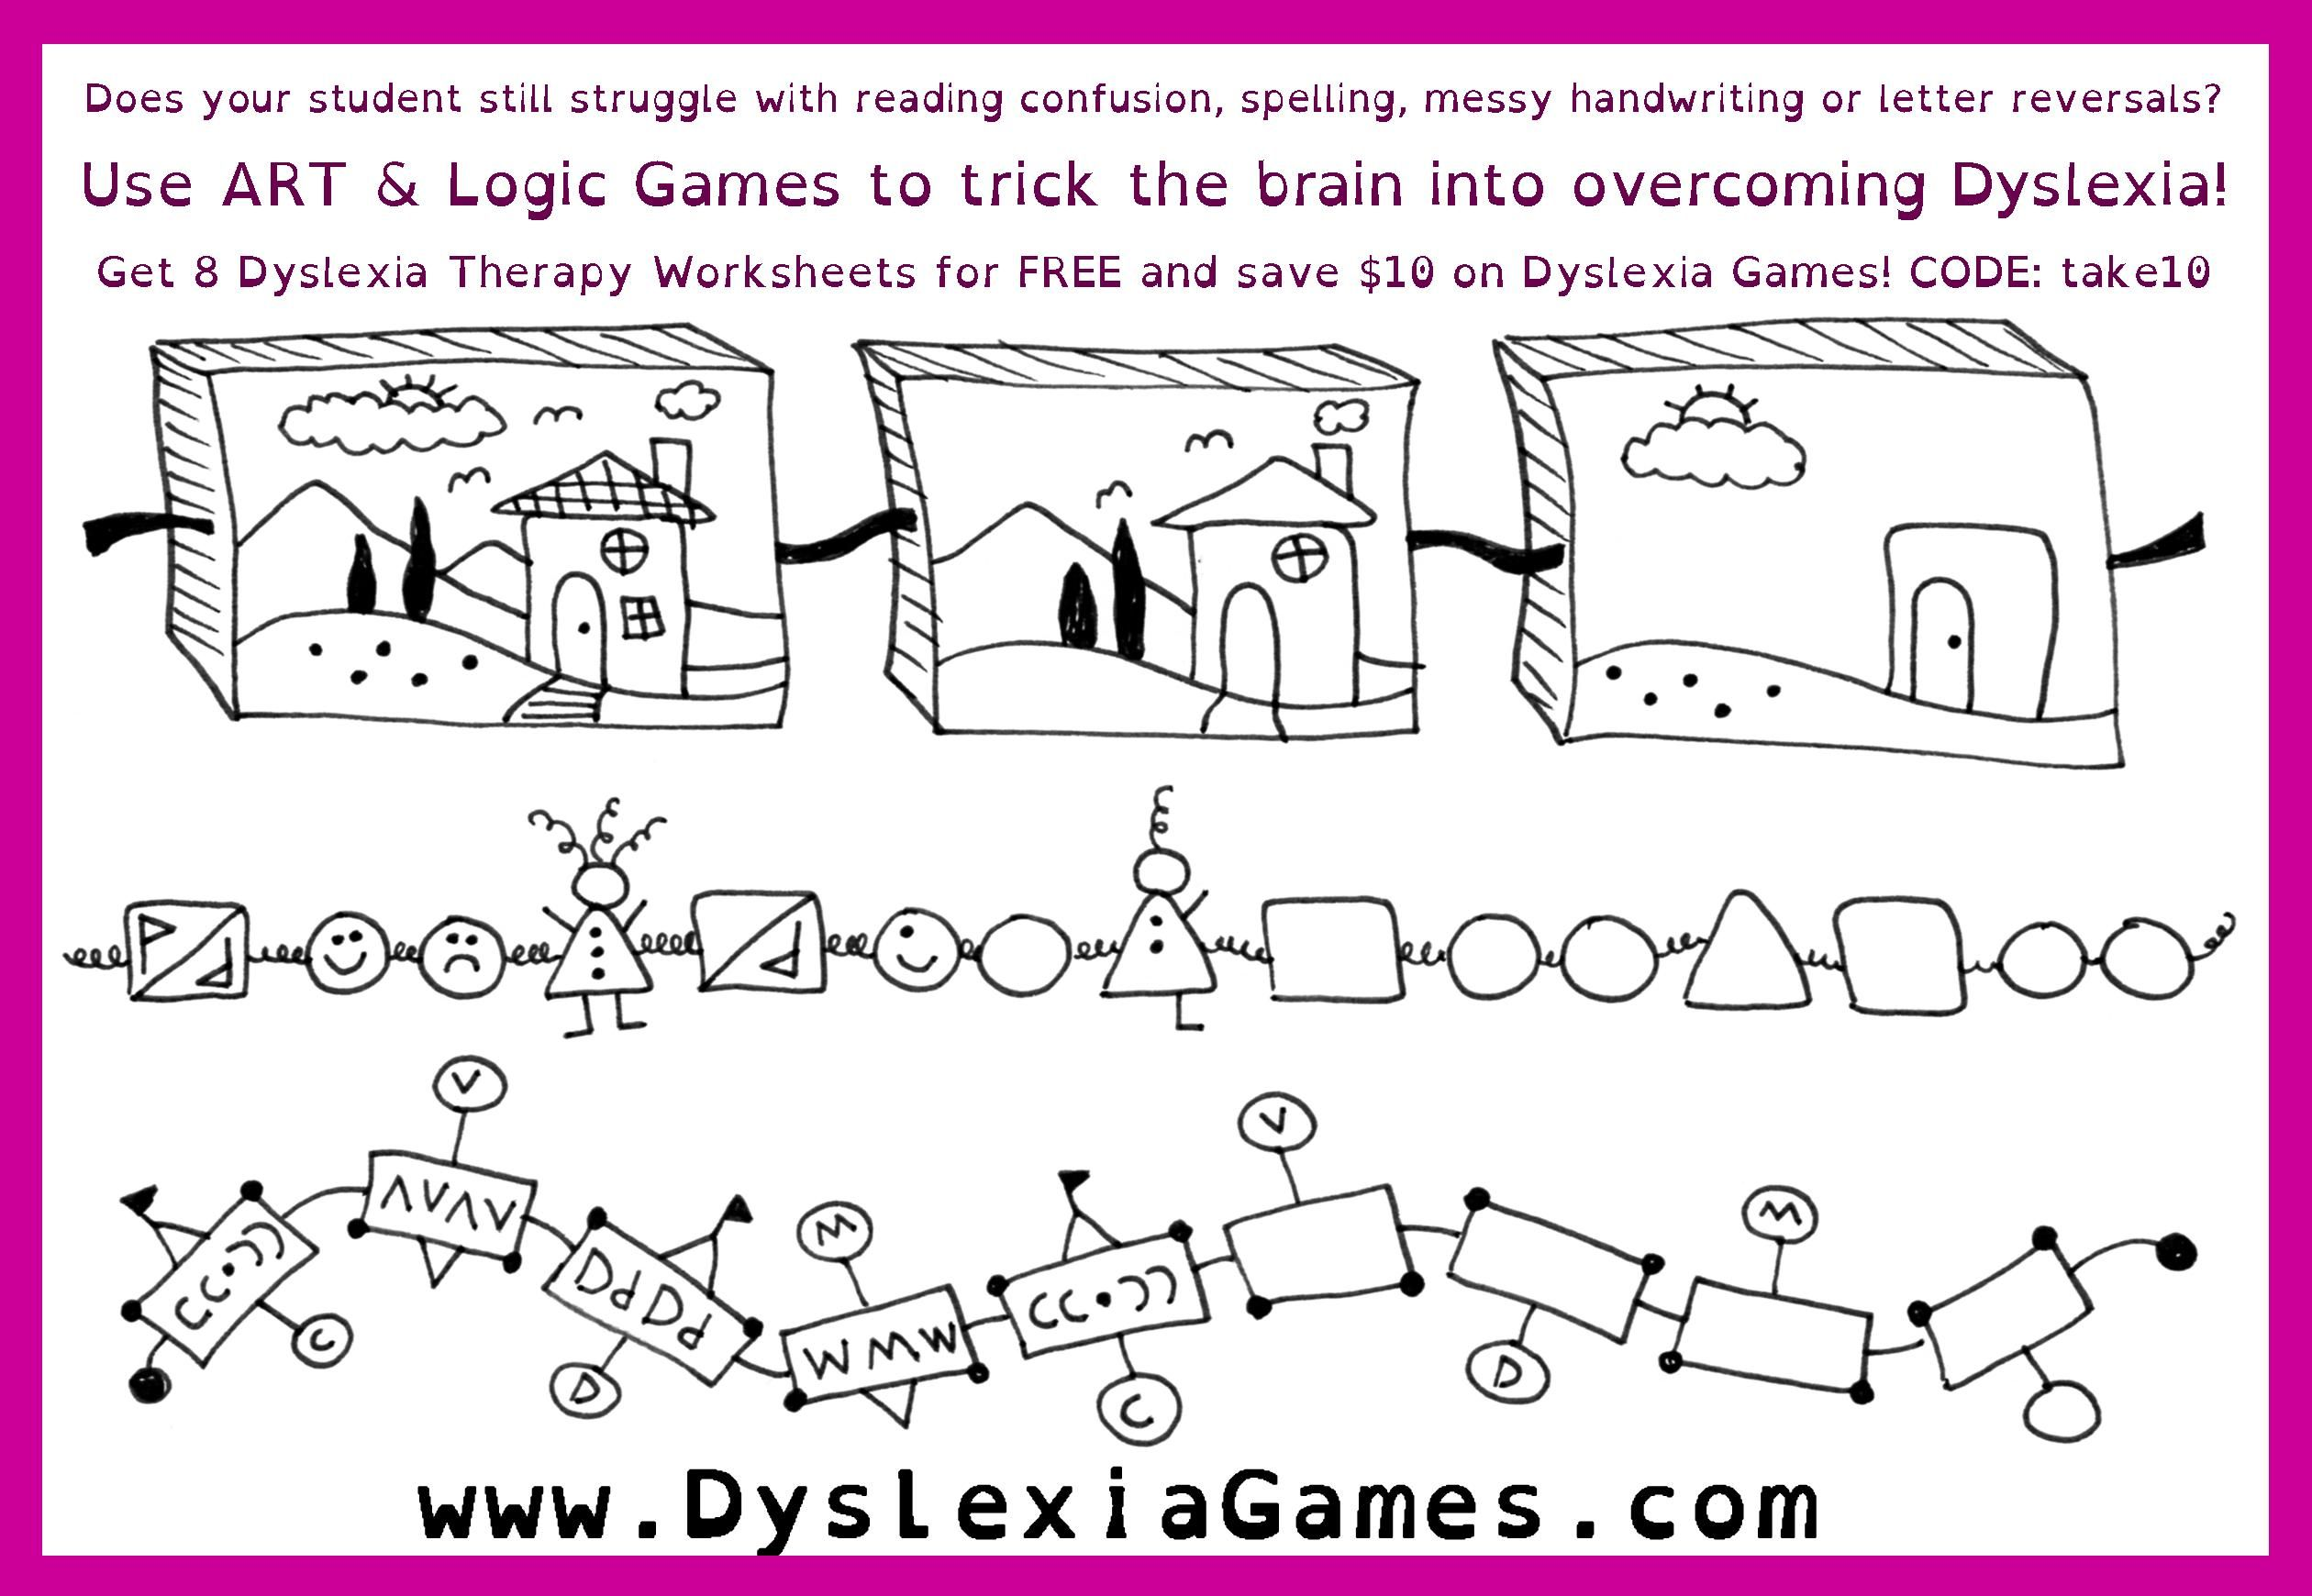 Worksheet Dyslexia Games For Kids 1000 images about dyslexia activities and tips on pinterest logic games spelling doodle books